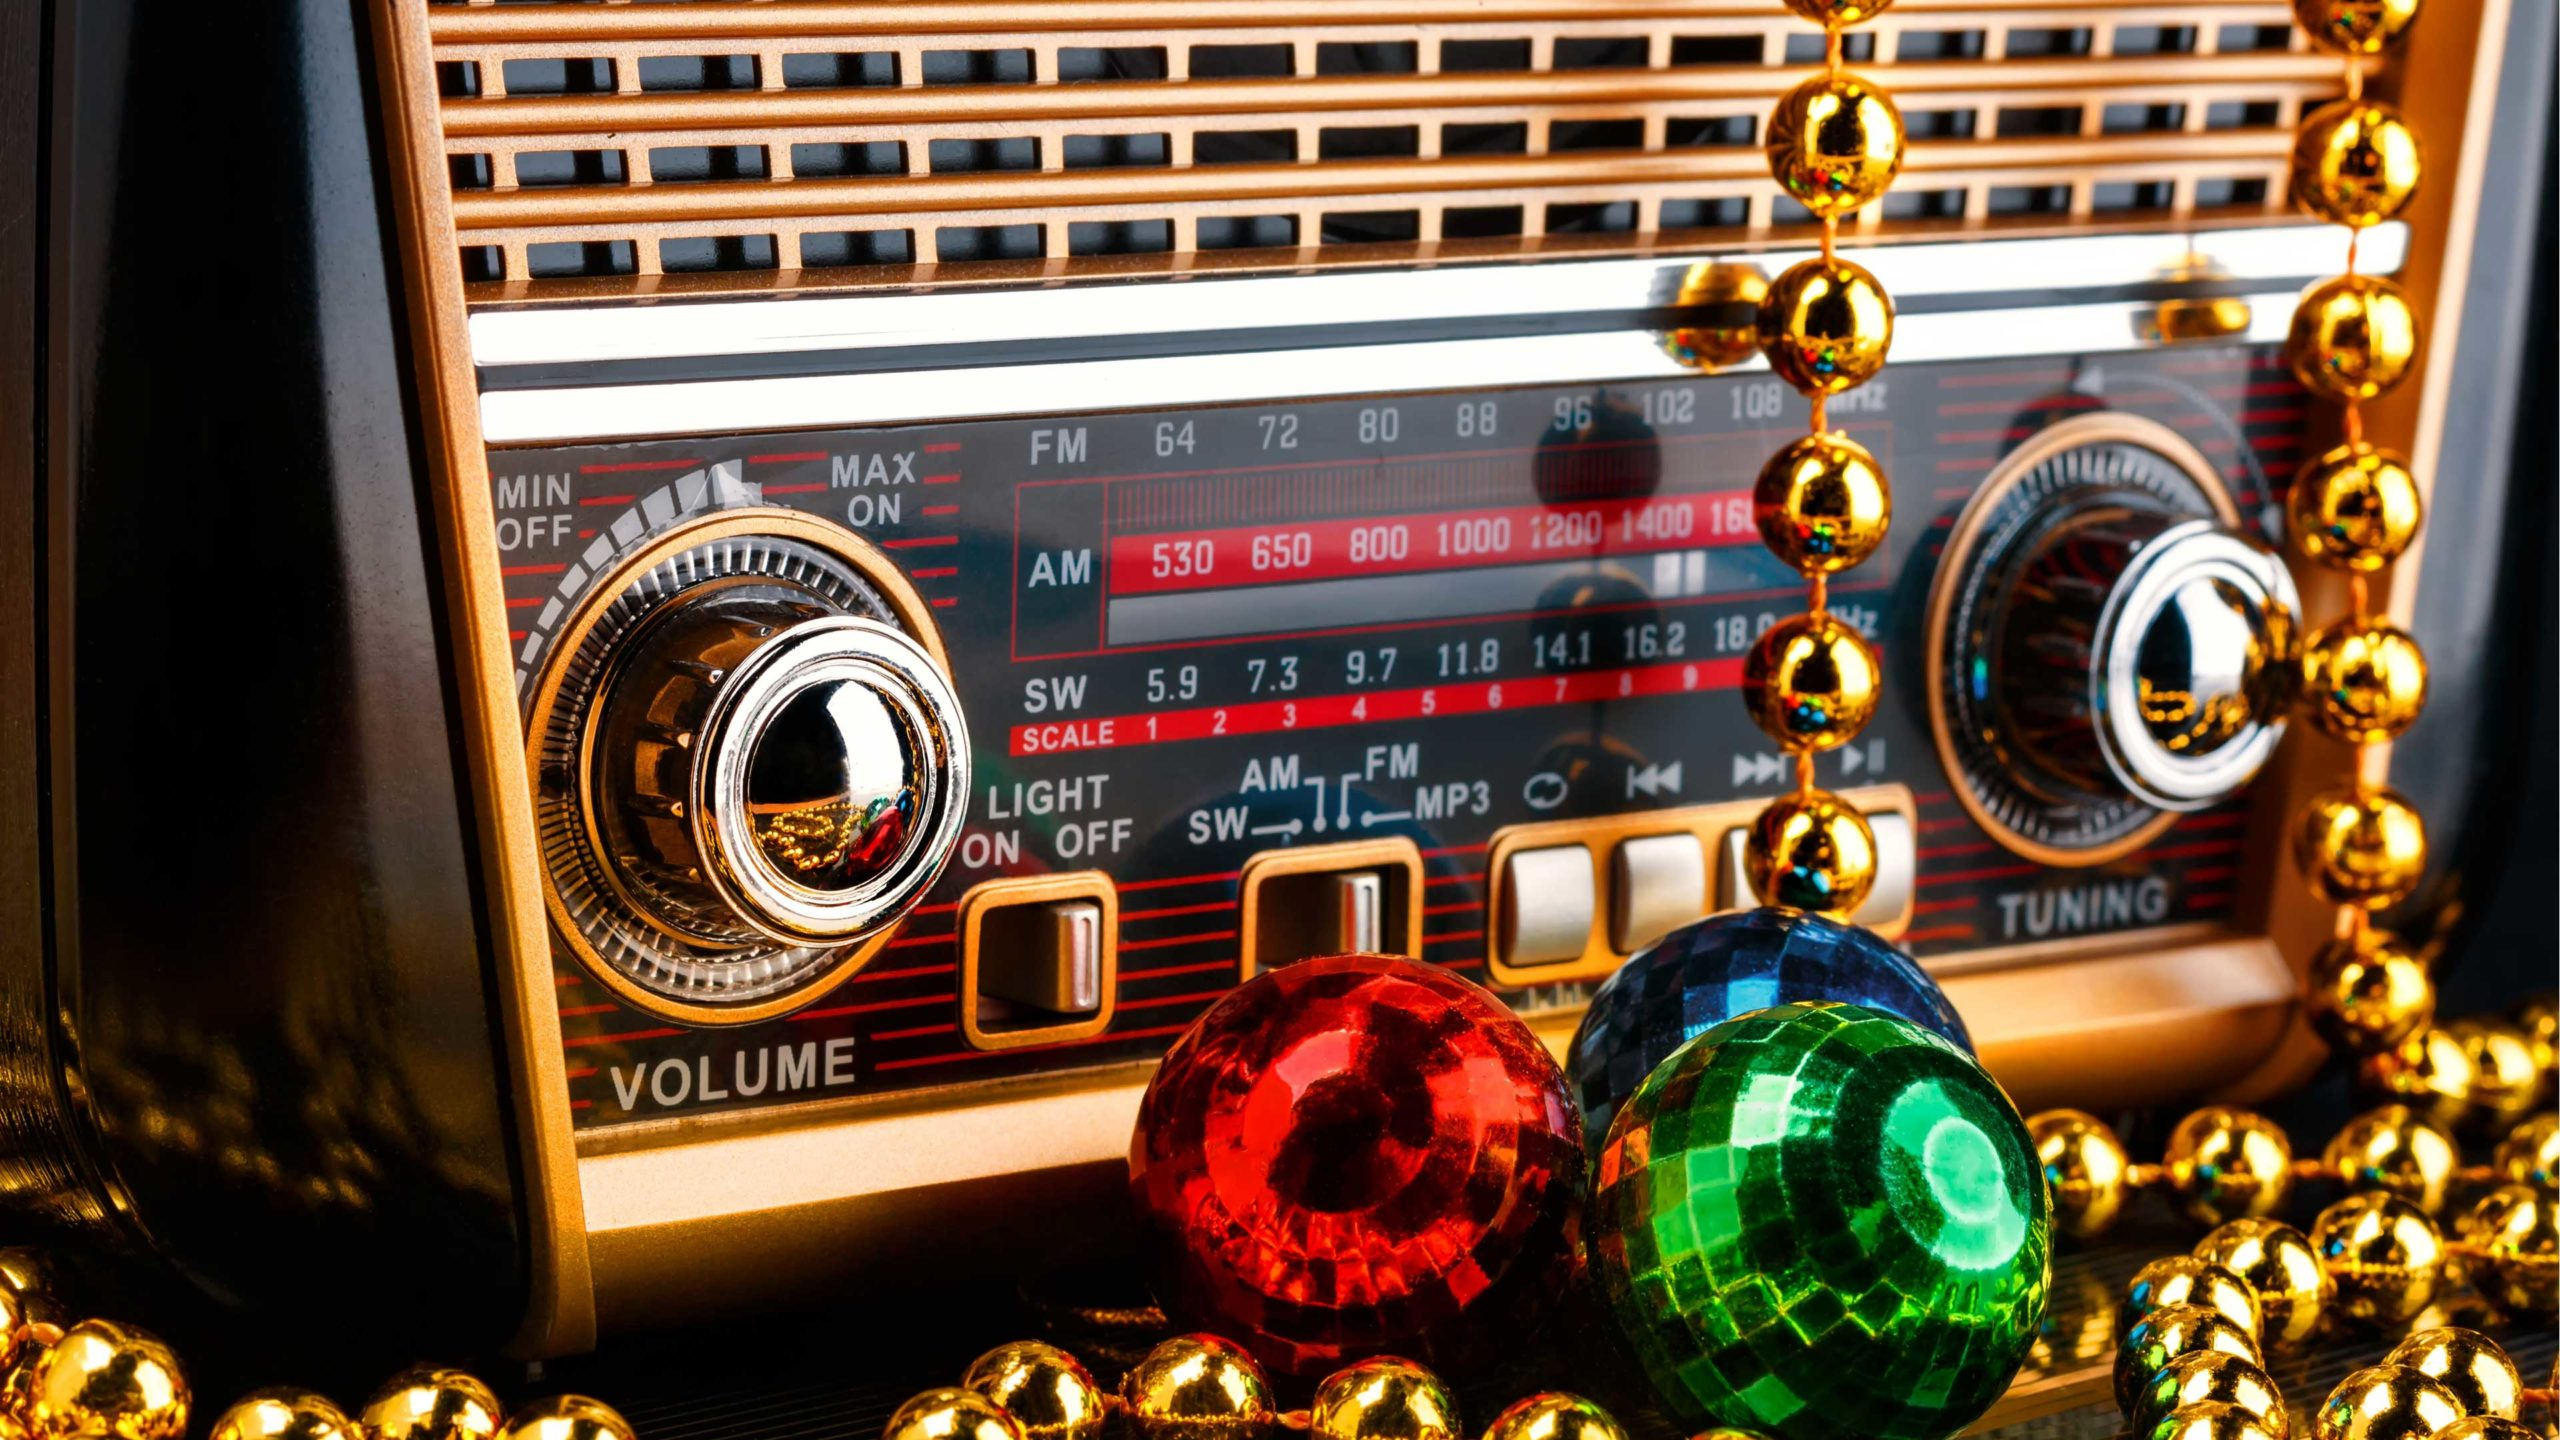 St Louis Christmas Radio 2020 When Do Radio Stations Start Christmas Music?